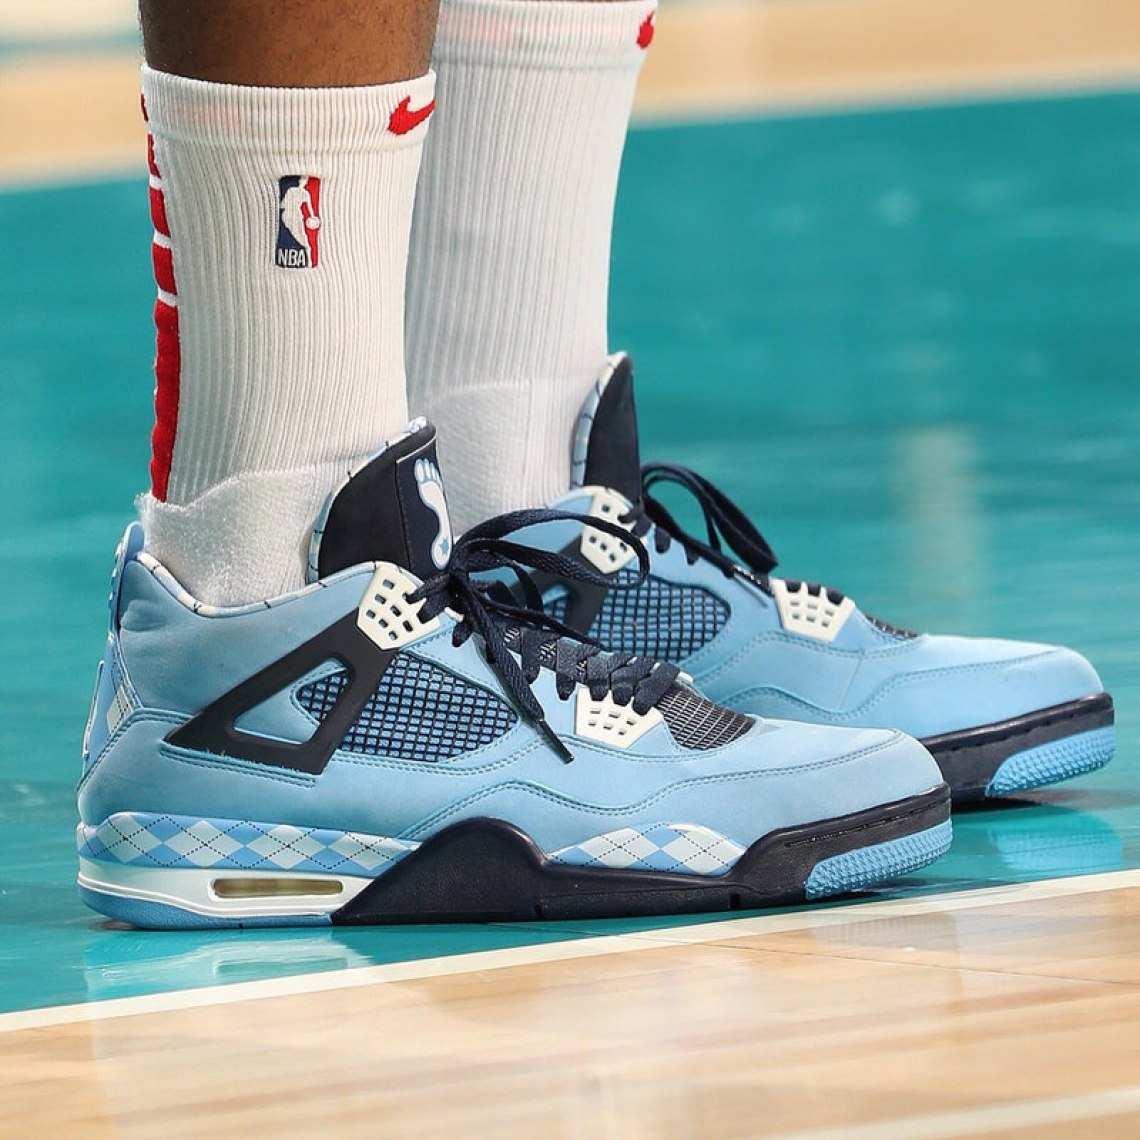 5a61a2512e9 ... PJ Tucker in the Air Jordan 4 North Carolina PE (photo by Kent  Smith/NBAE via Getty Images) ...